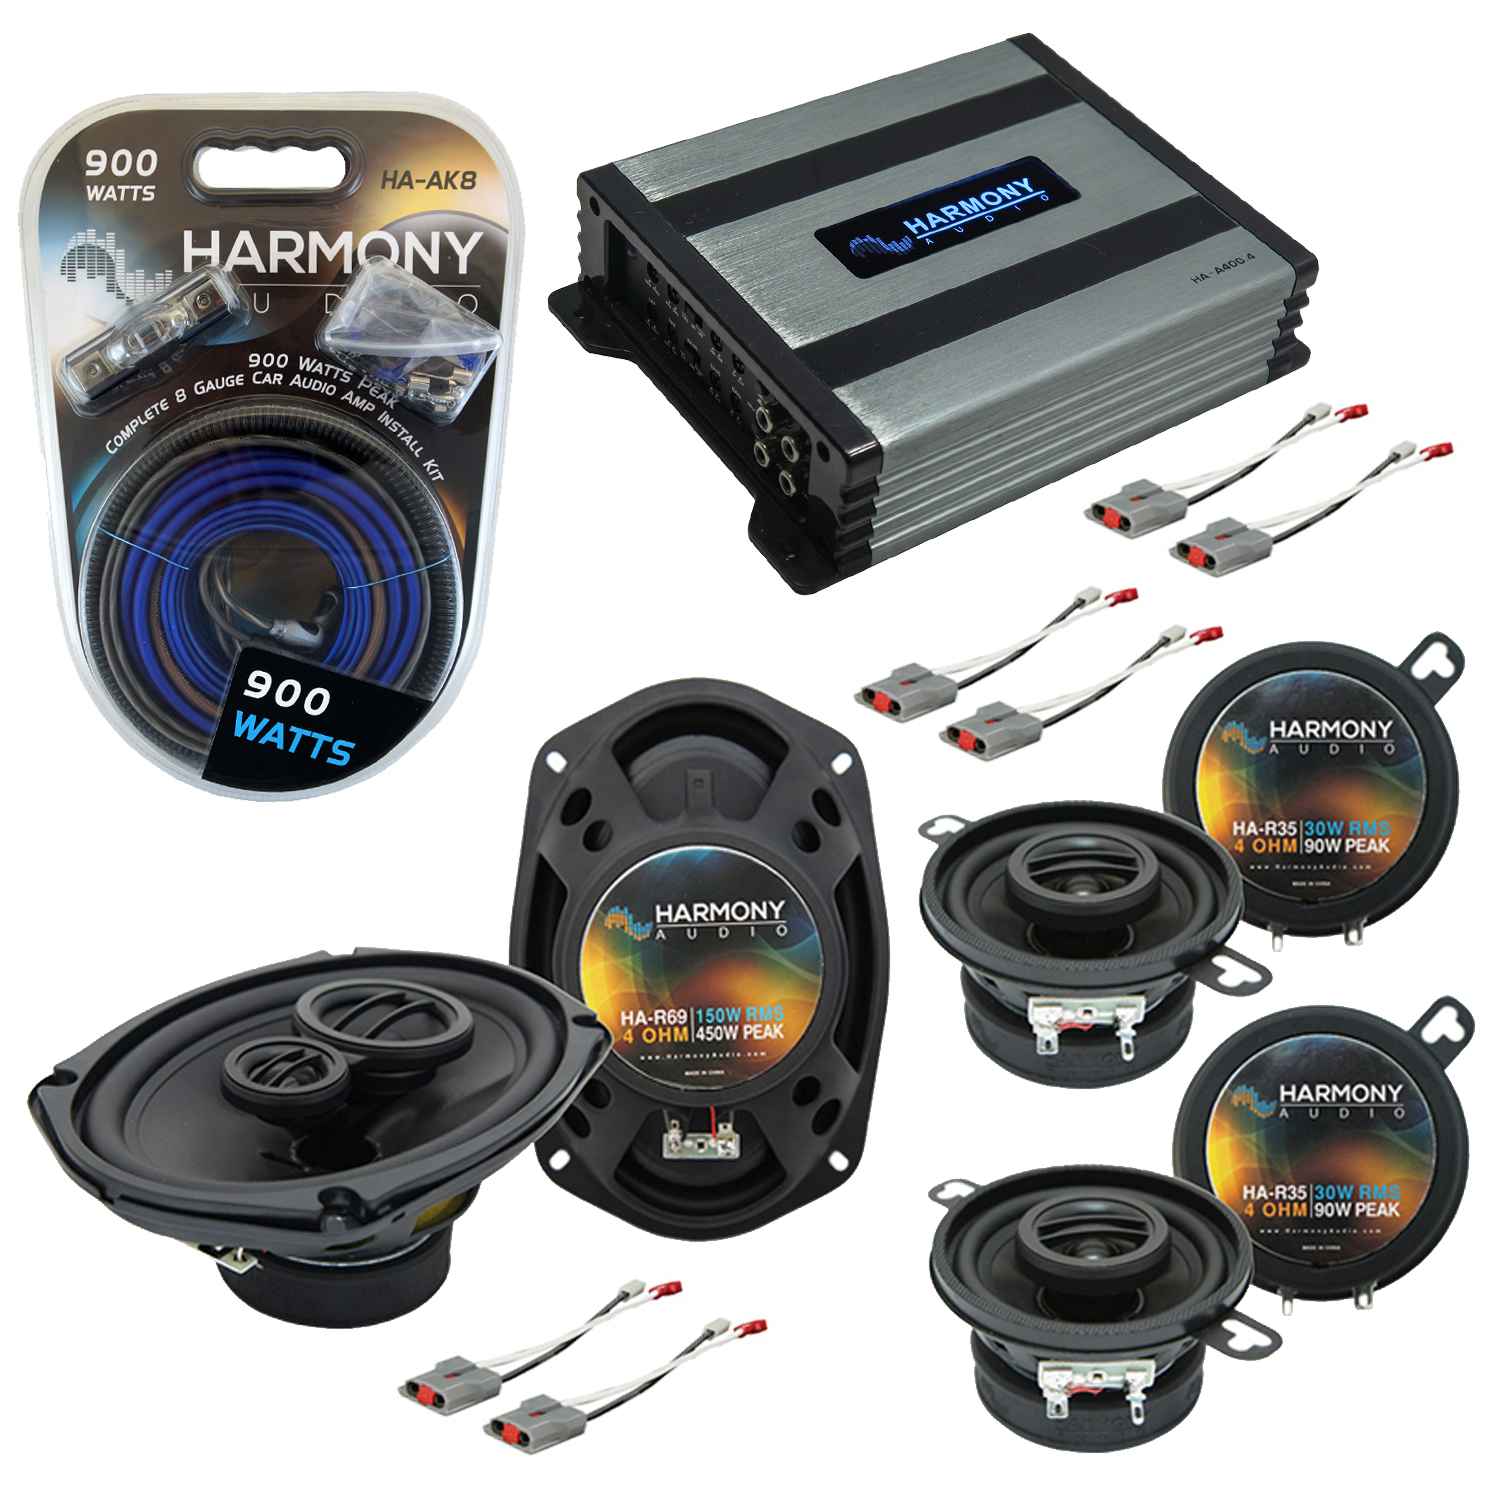 Compatible with Ford Aerostar 1986-1997 OEM Speaker Replacement Harmony (2)R35 R69 & Harmony HA-A400.4 Amp